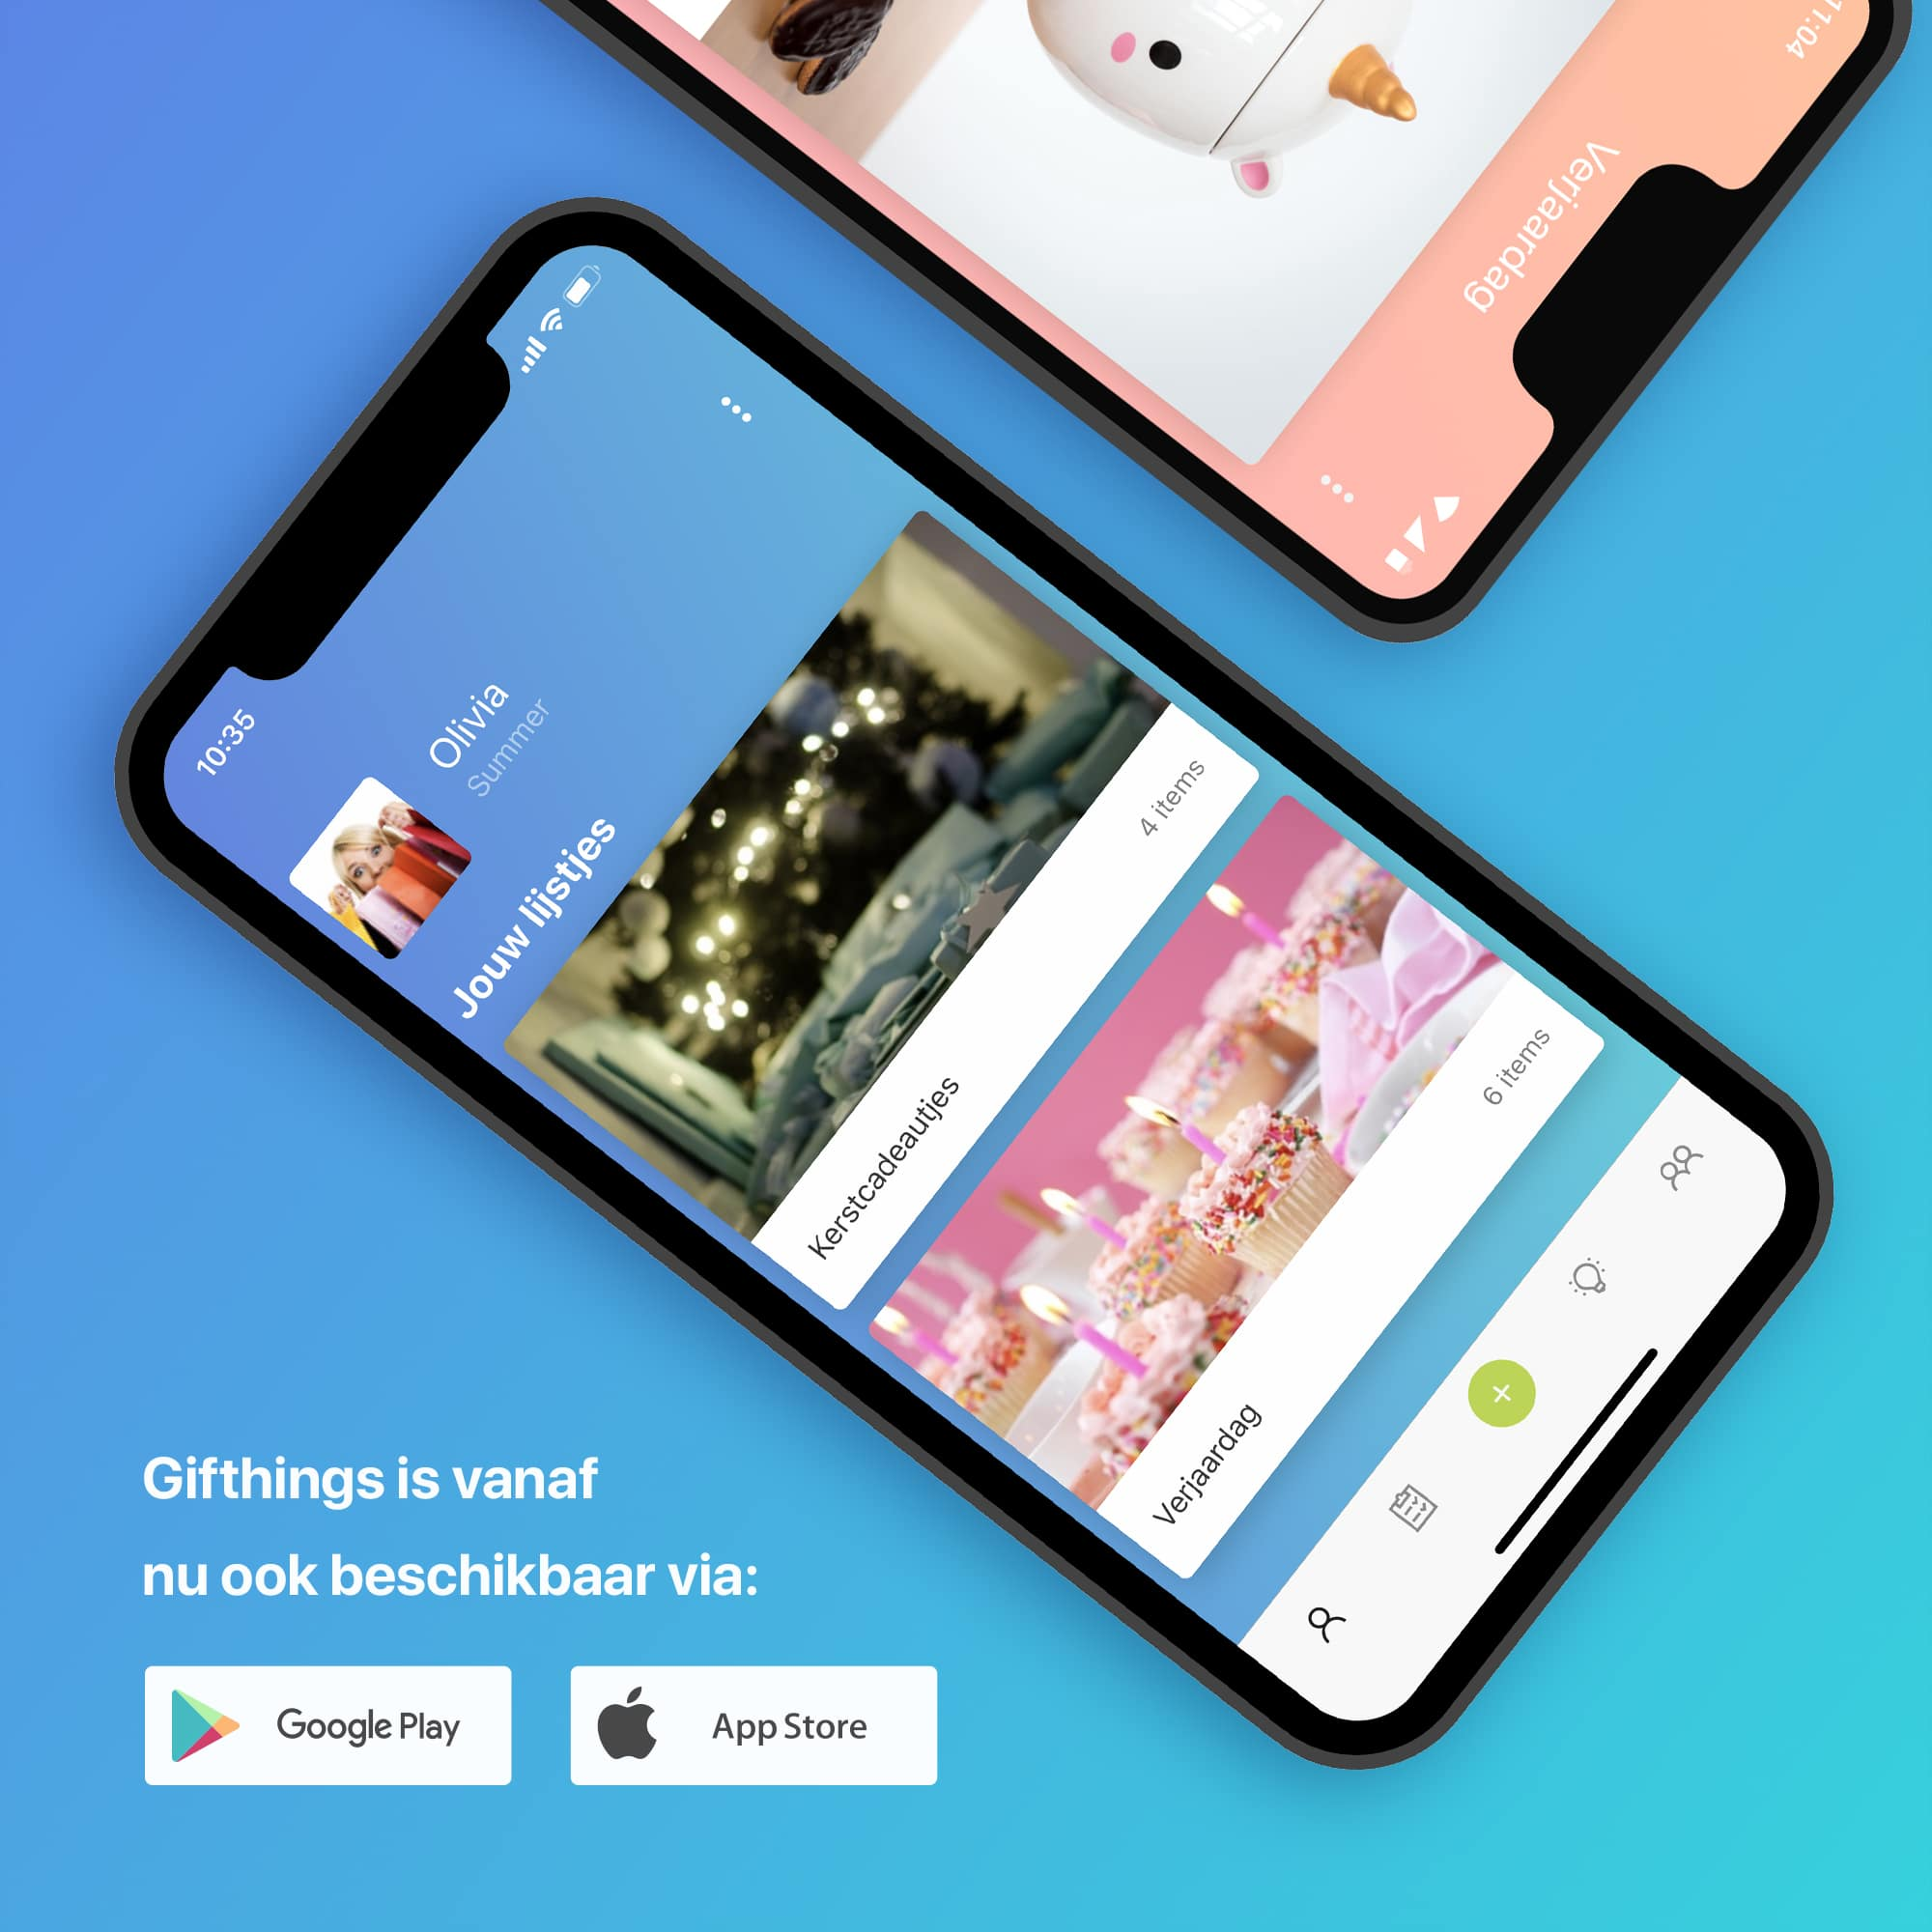 Gifthings mobiele apps